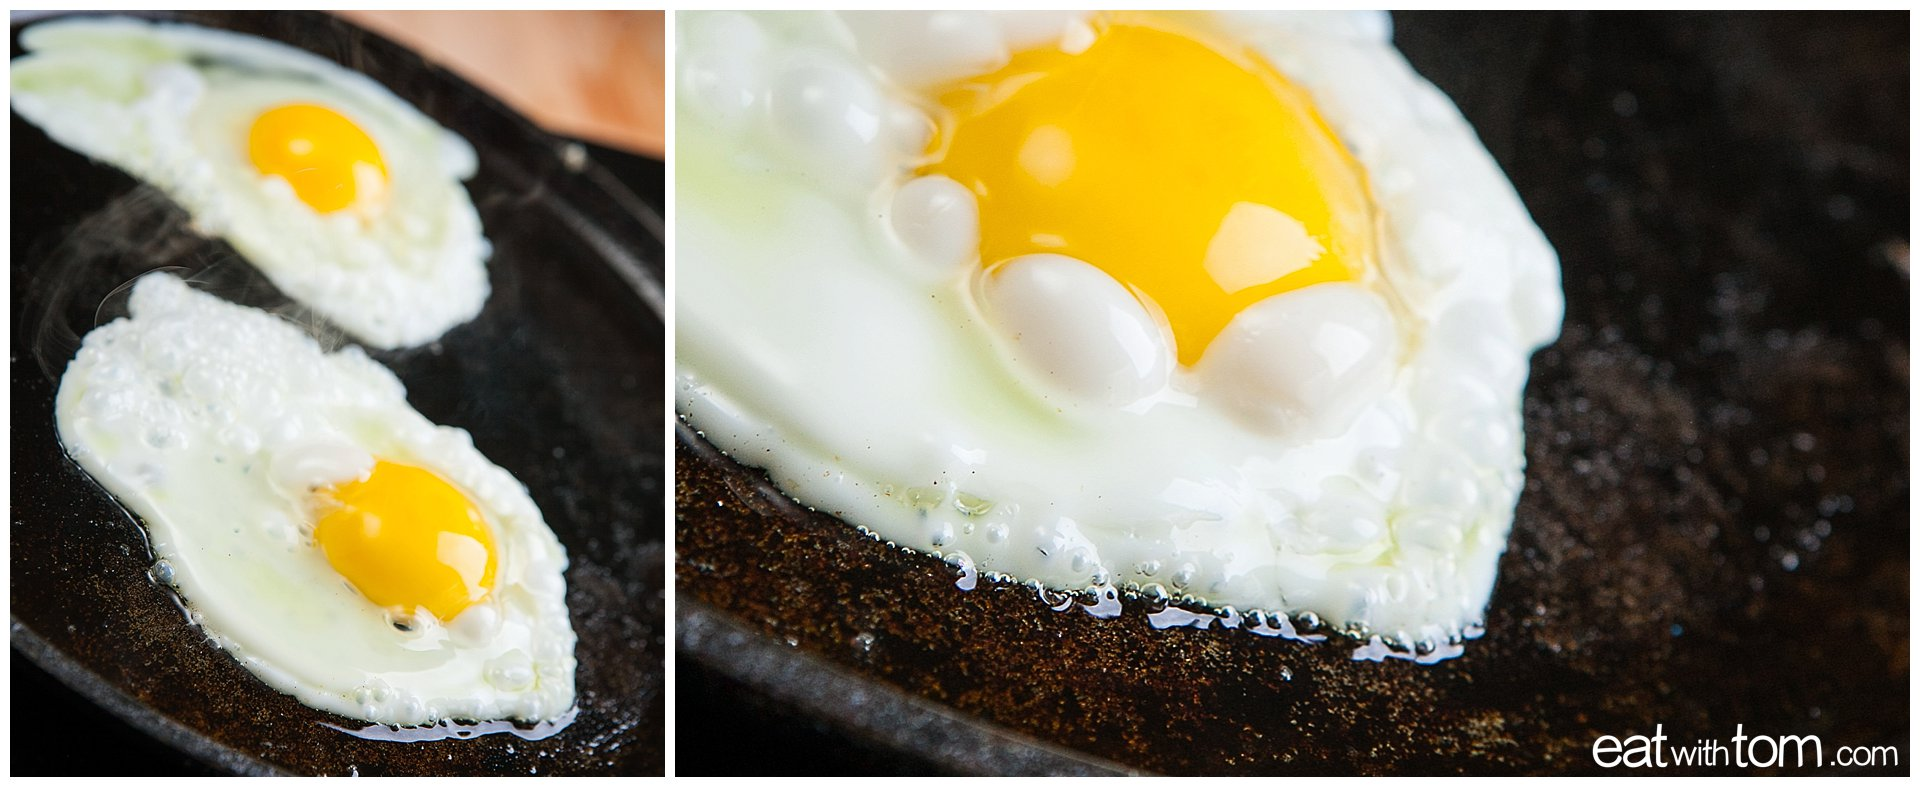 How to cook eggs with gooey center recipe on cast iron pan with butter